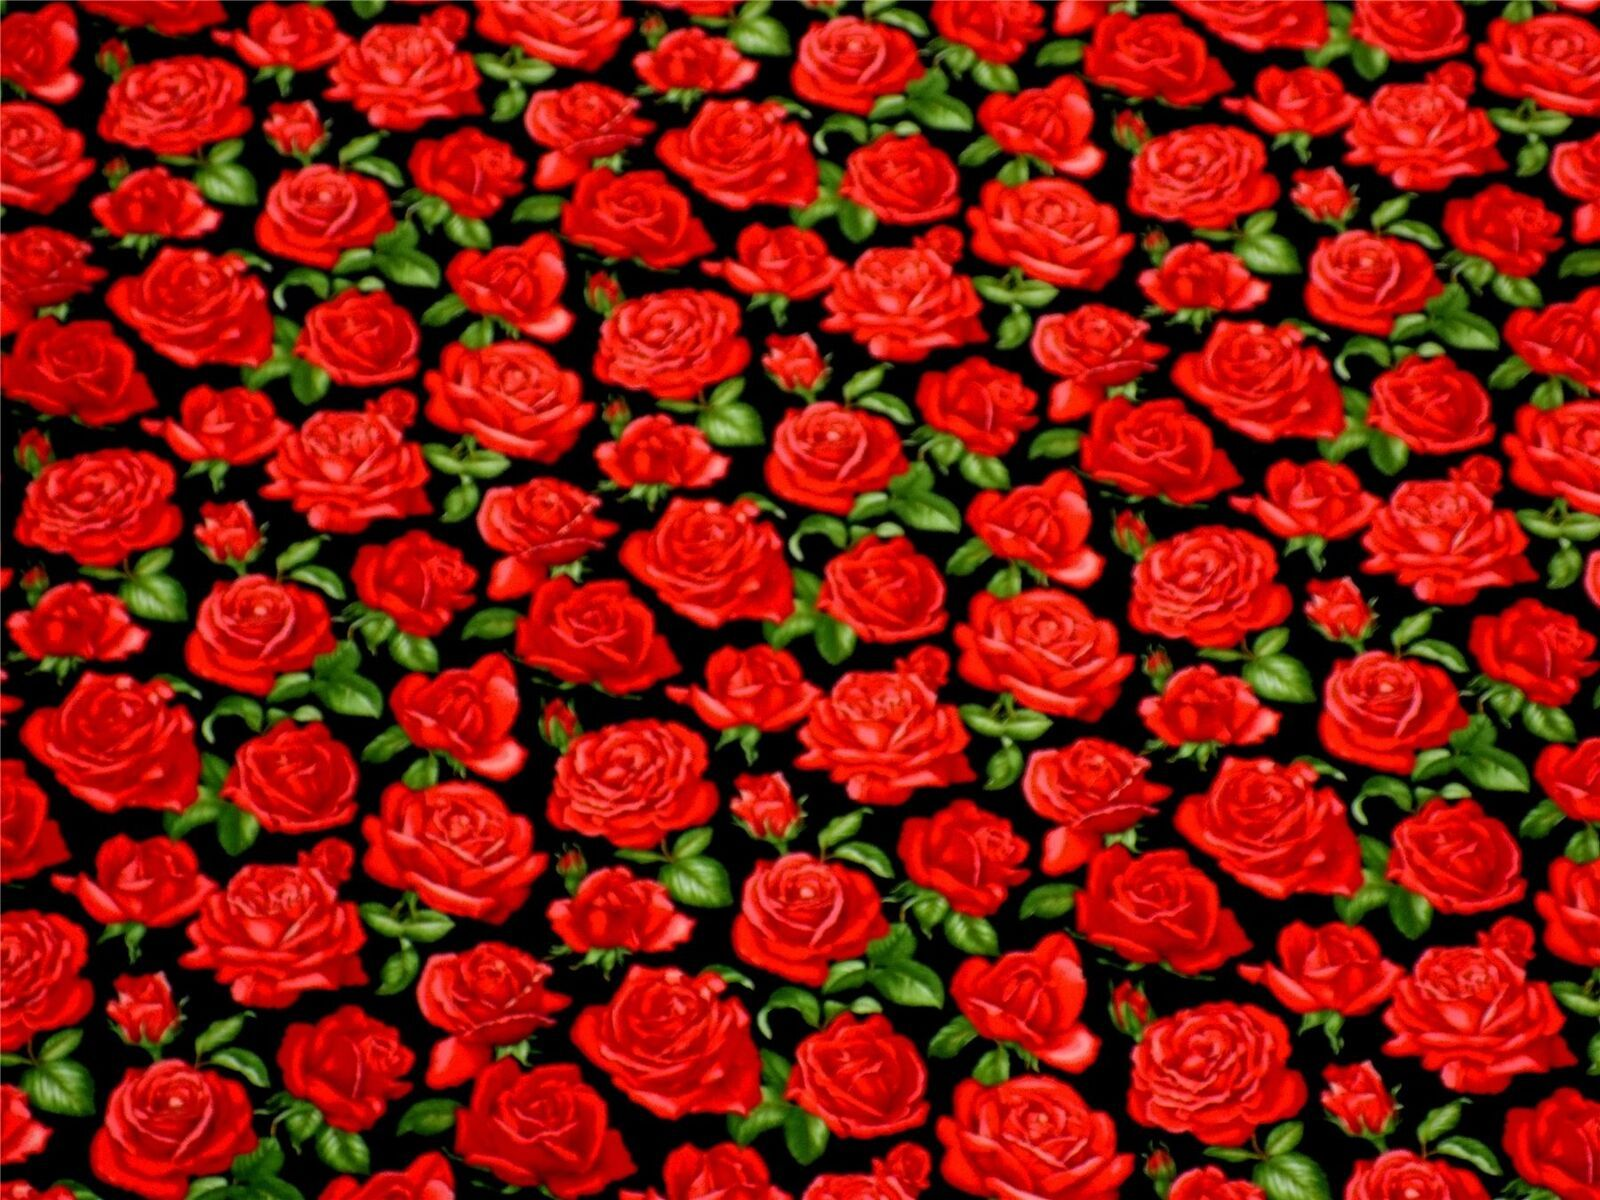 Roses Black Red 100% Cotton High Quality Fabric Material 3 Sizes